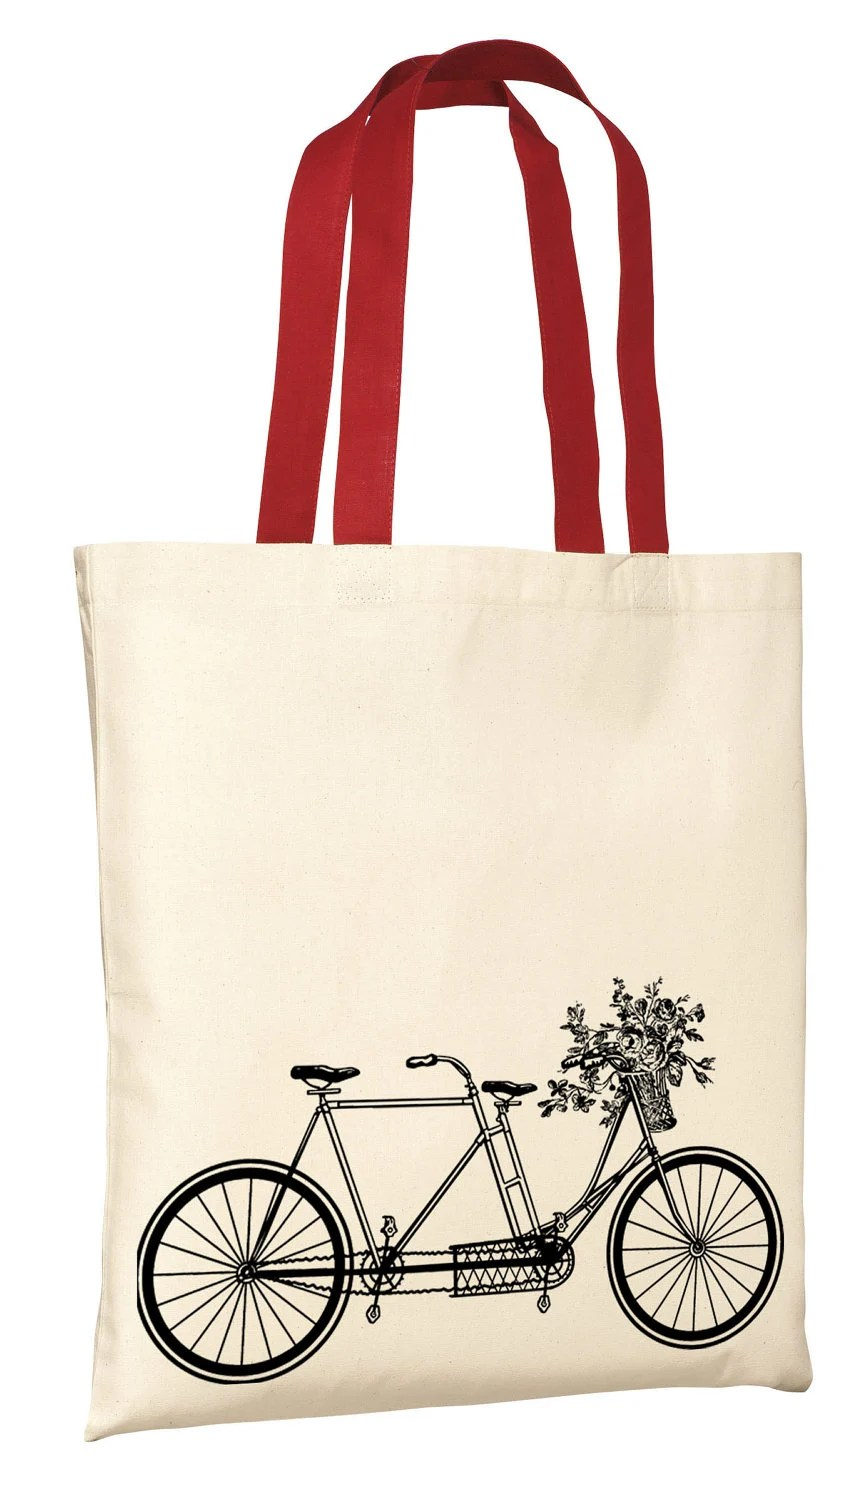 http://www.etsy.com/listing/111250065/bicycle-built-for-flowers-canvas-tote?ref=sr_gallery_26&ga_search_query=bicycle&ga_view_type=gallery&ga_ship_to=ES&ga_spelling_accepted=biclycle&ga_search_type=all&ga_facet=bicycle